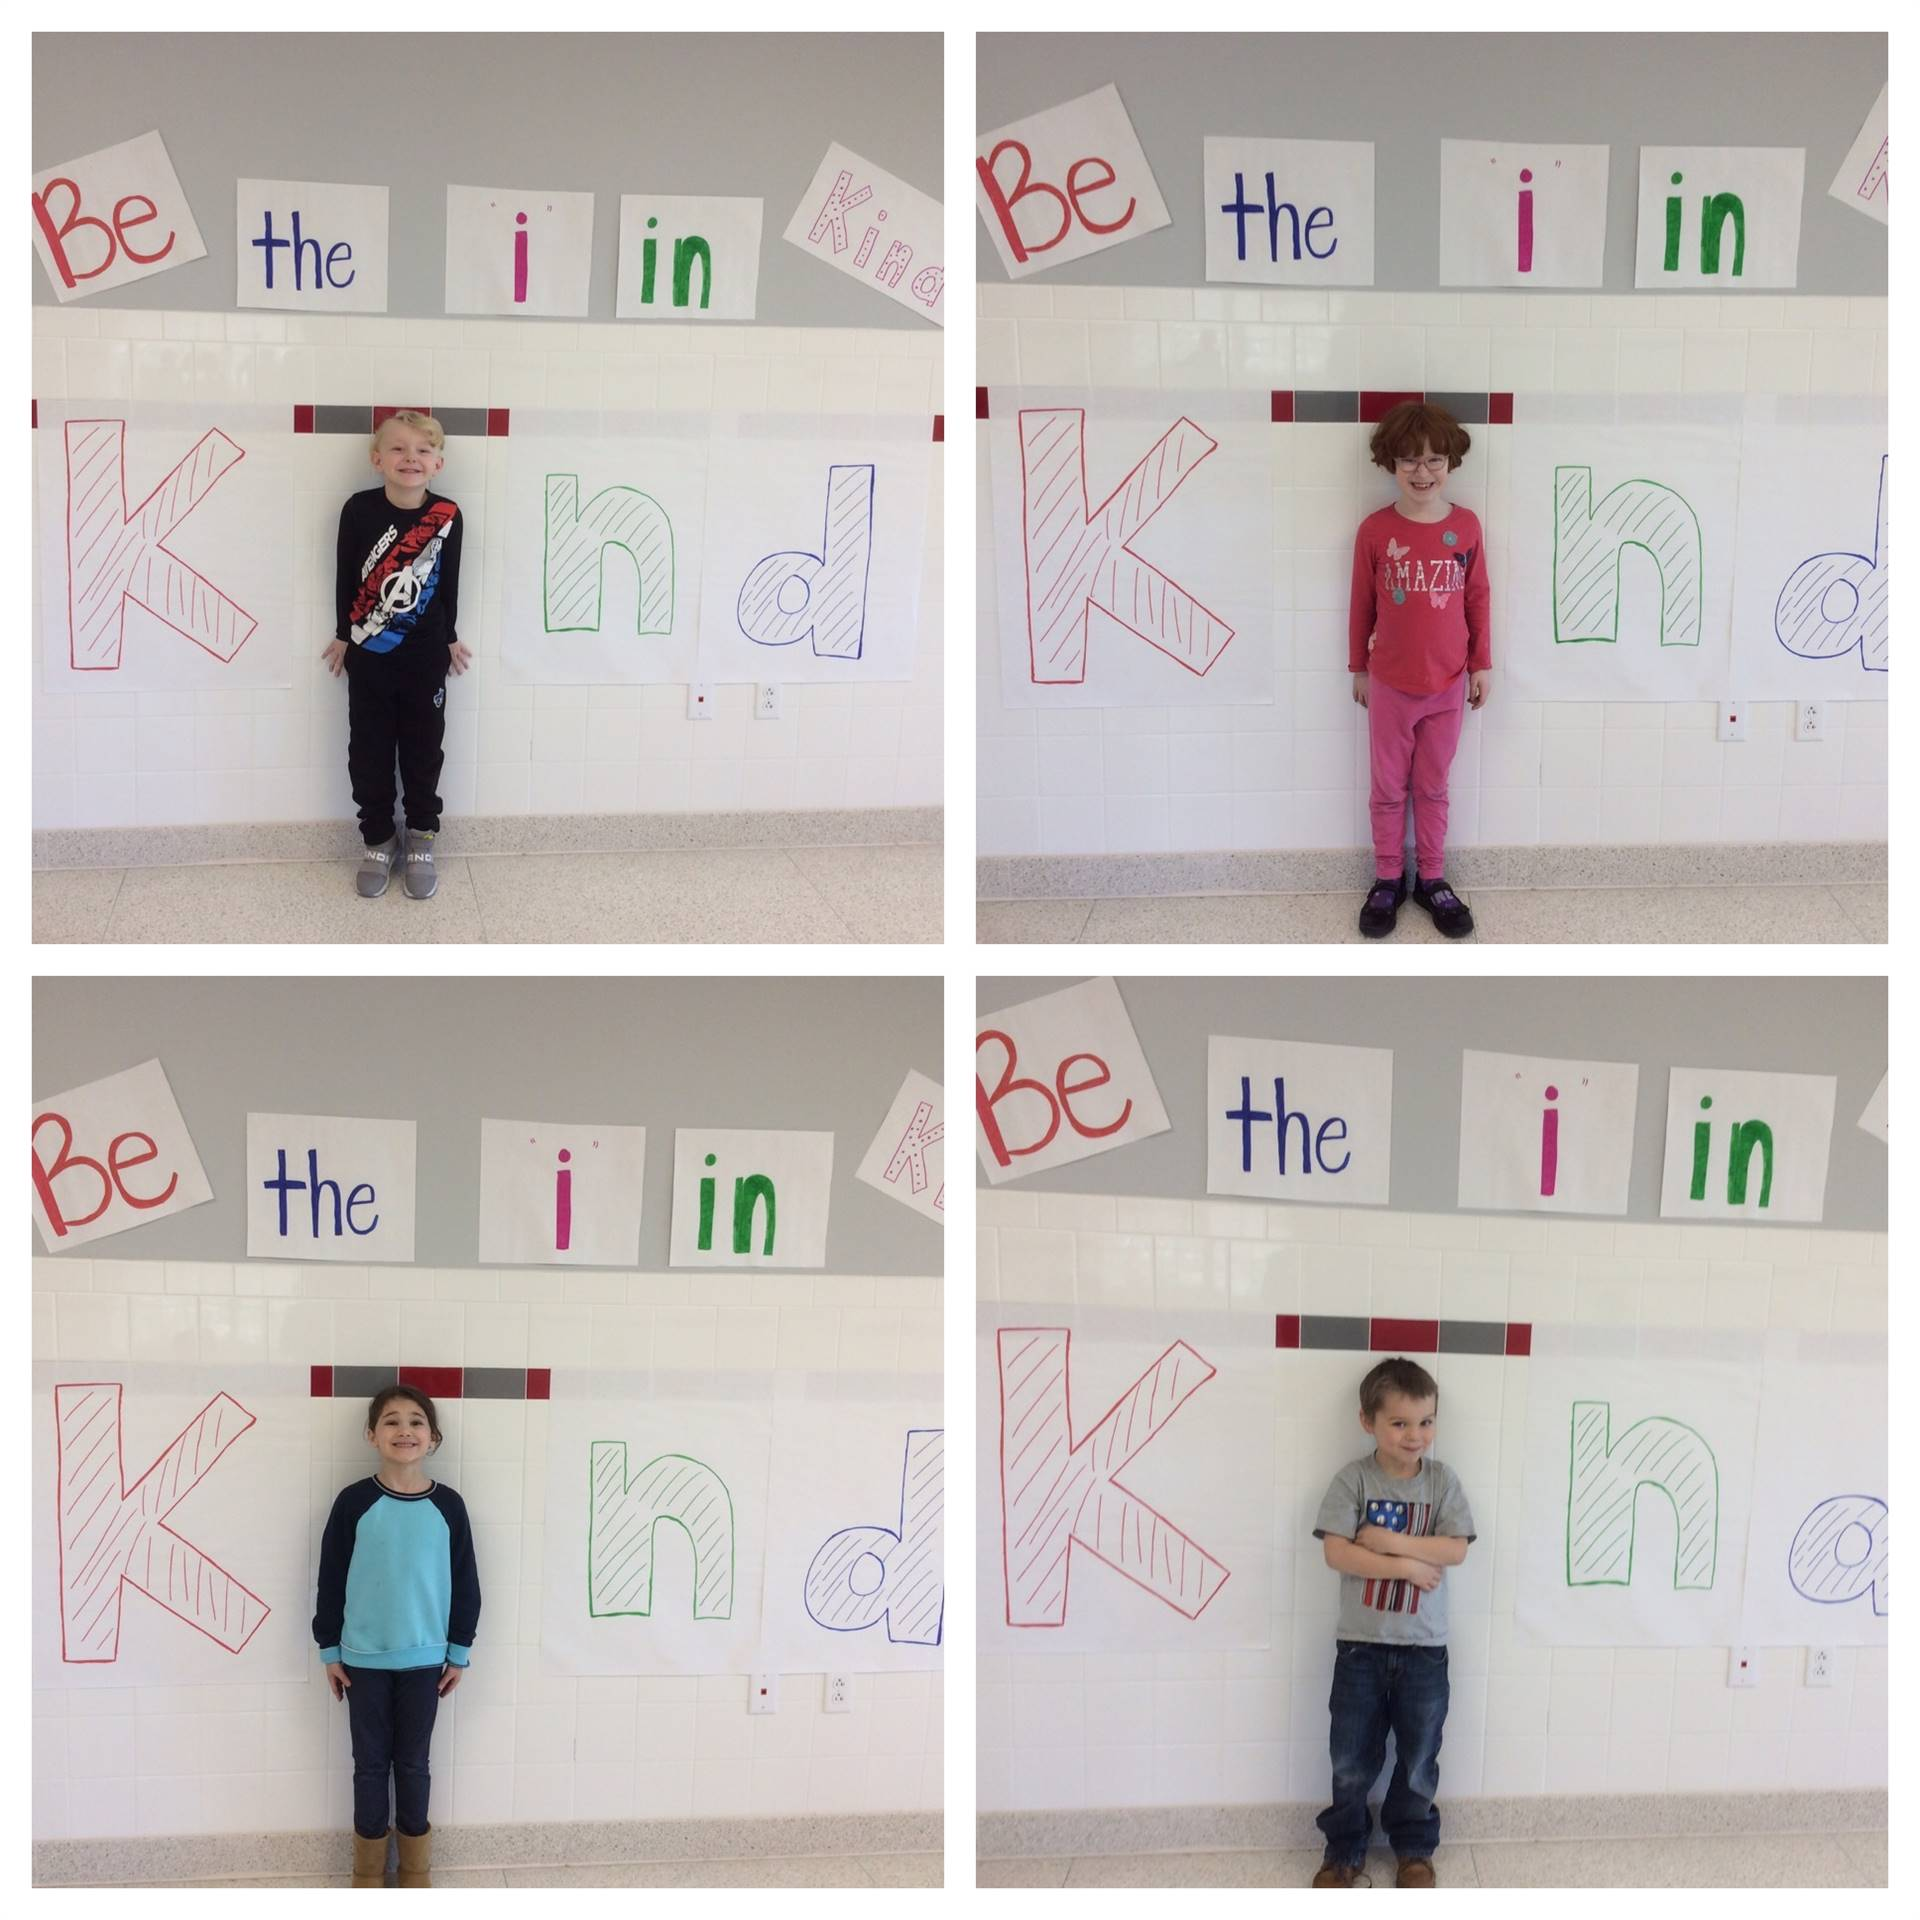 port dickinson students displaying putting the i in kindness 1 of 5